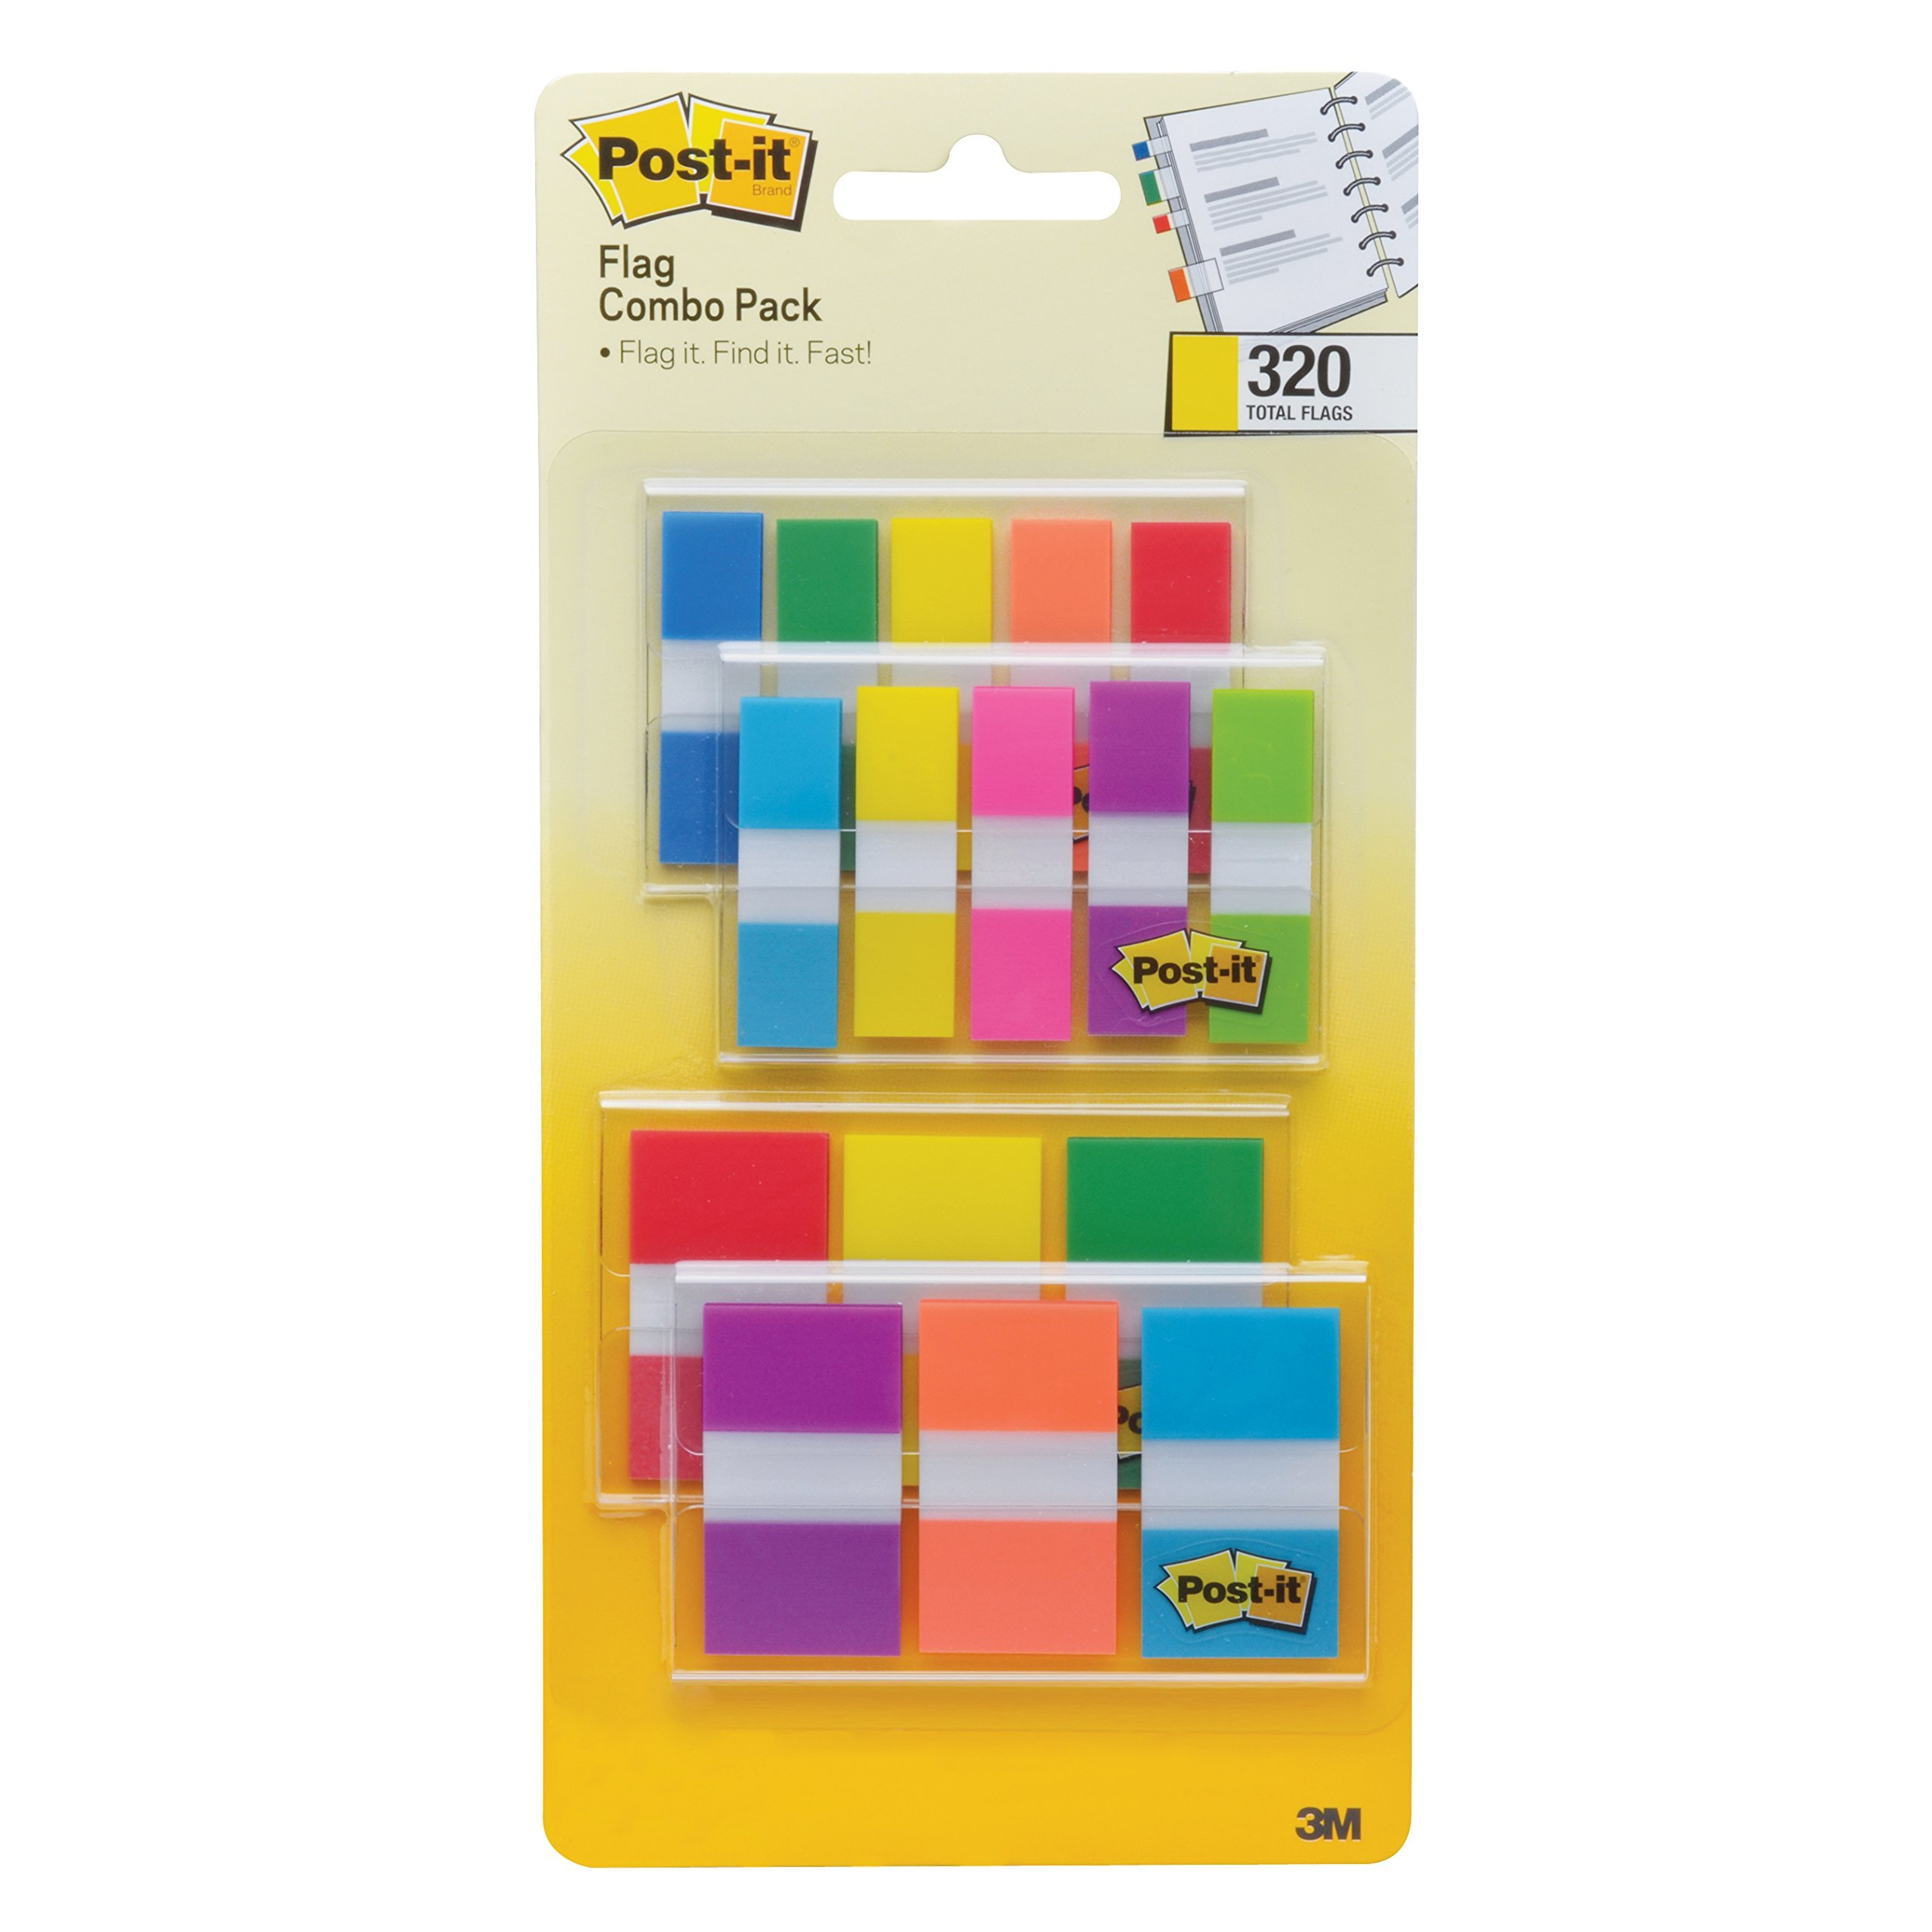 Post-it Flags Assorted Color Combo Pack, 1-inch Wide and .5-inch Wide Flags PHL92, 2-Pack